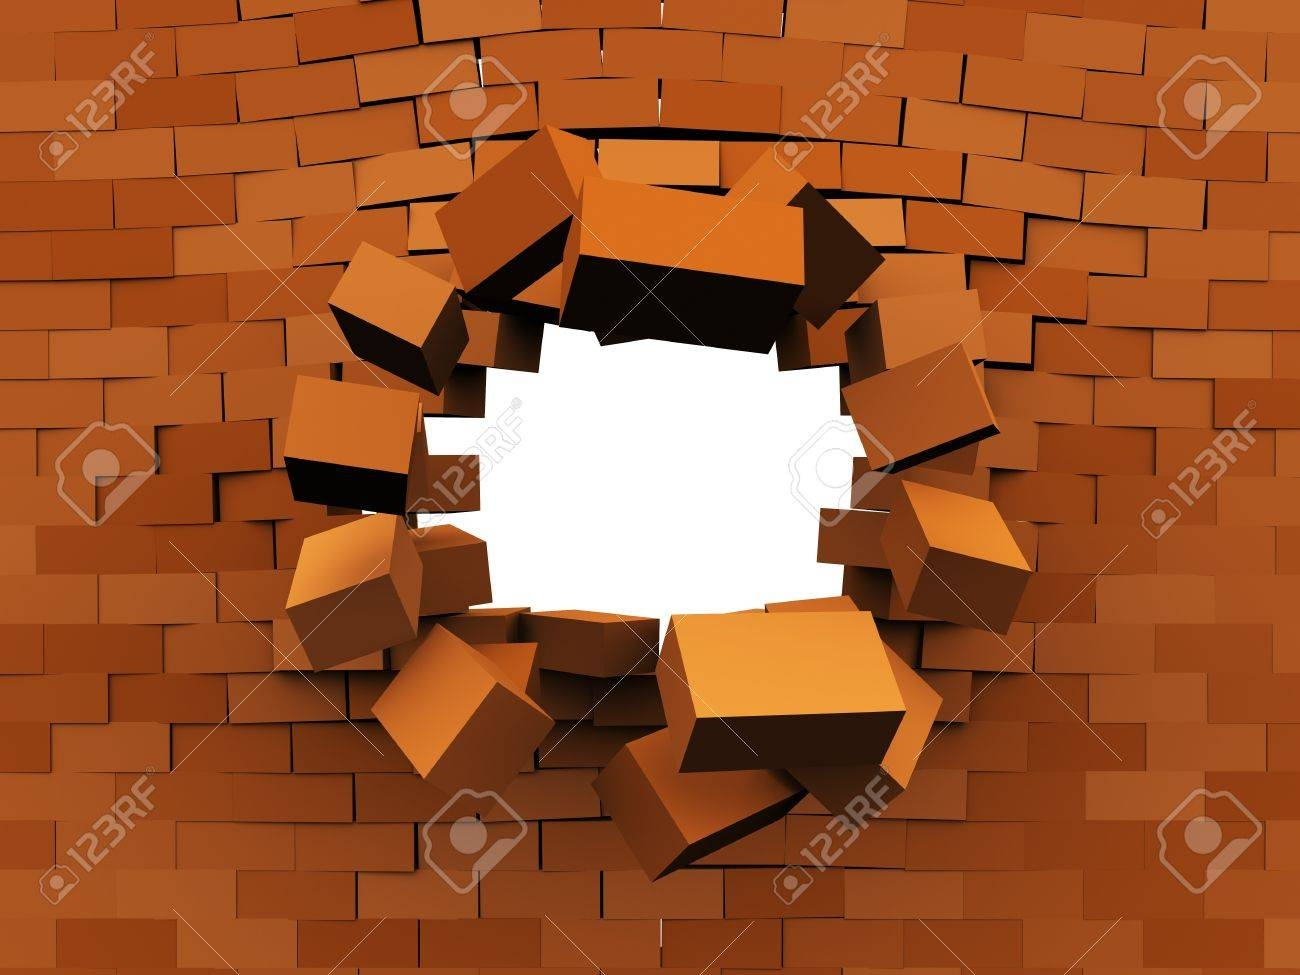 3D Illustration Of Brick Wall Demolition Over White Background Regarding Most Current